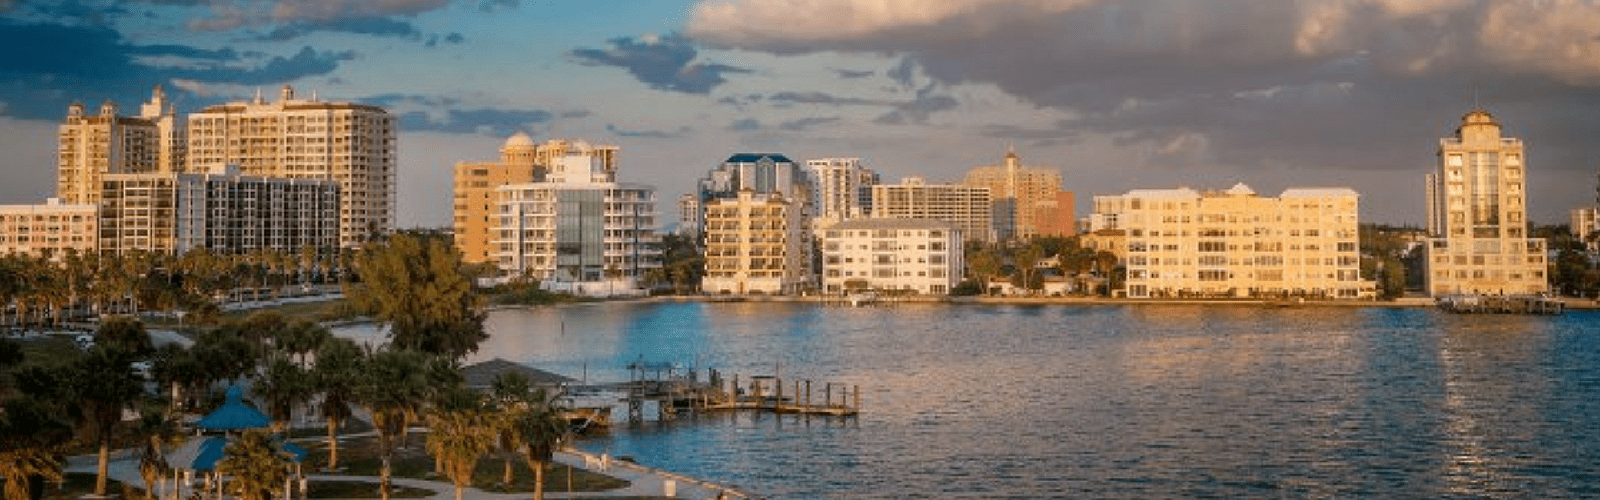 US News Names Sarasota, Florida as One of the Best Places to Live in America